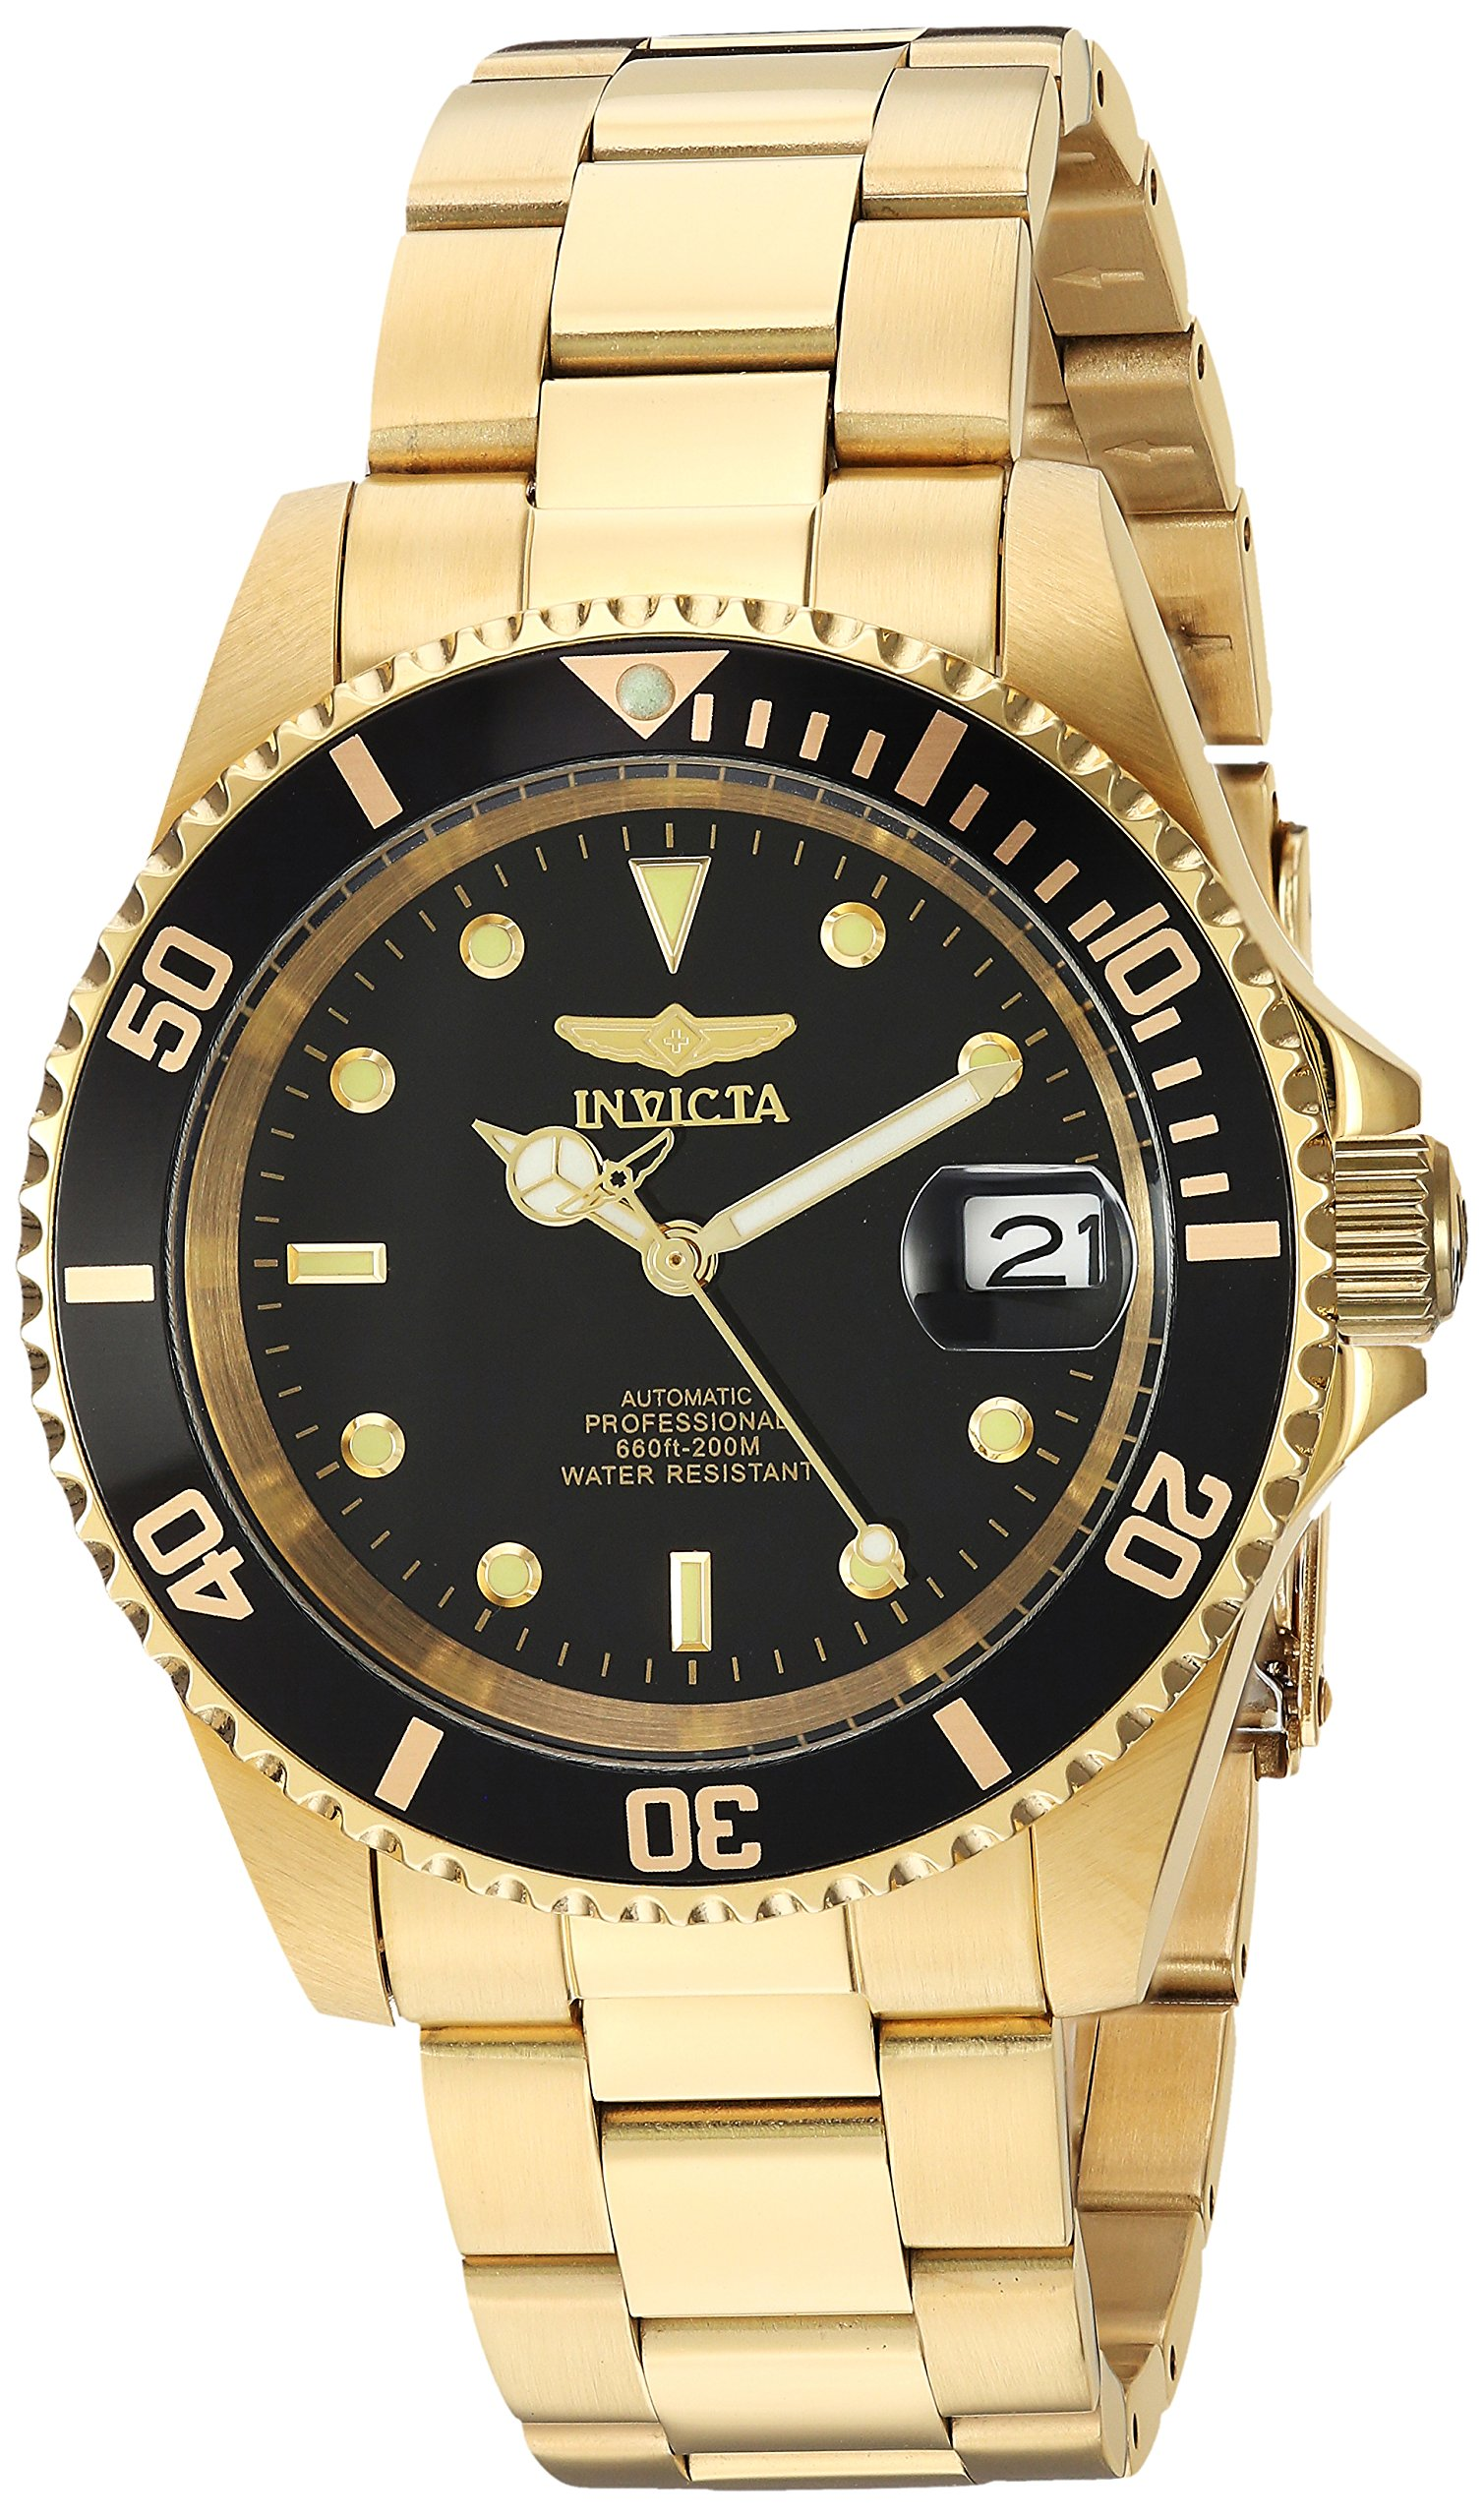 Invicta Men's 8929OB Pro Diver Analog Display Japanese Automatic Gold/Black Watch by Invicta